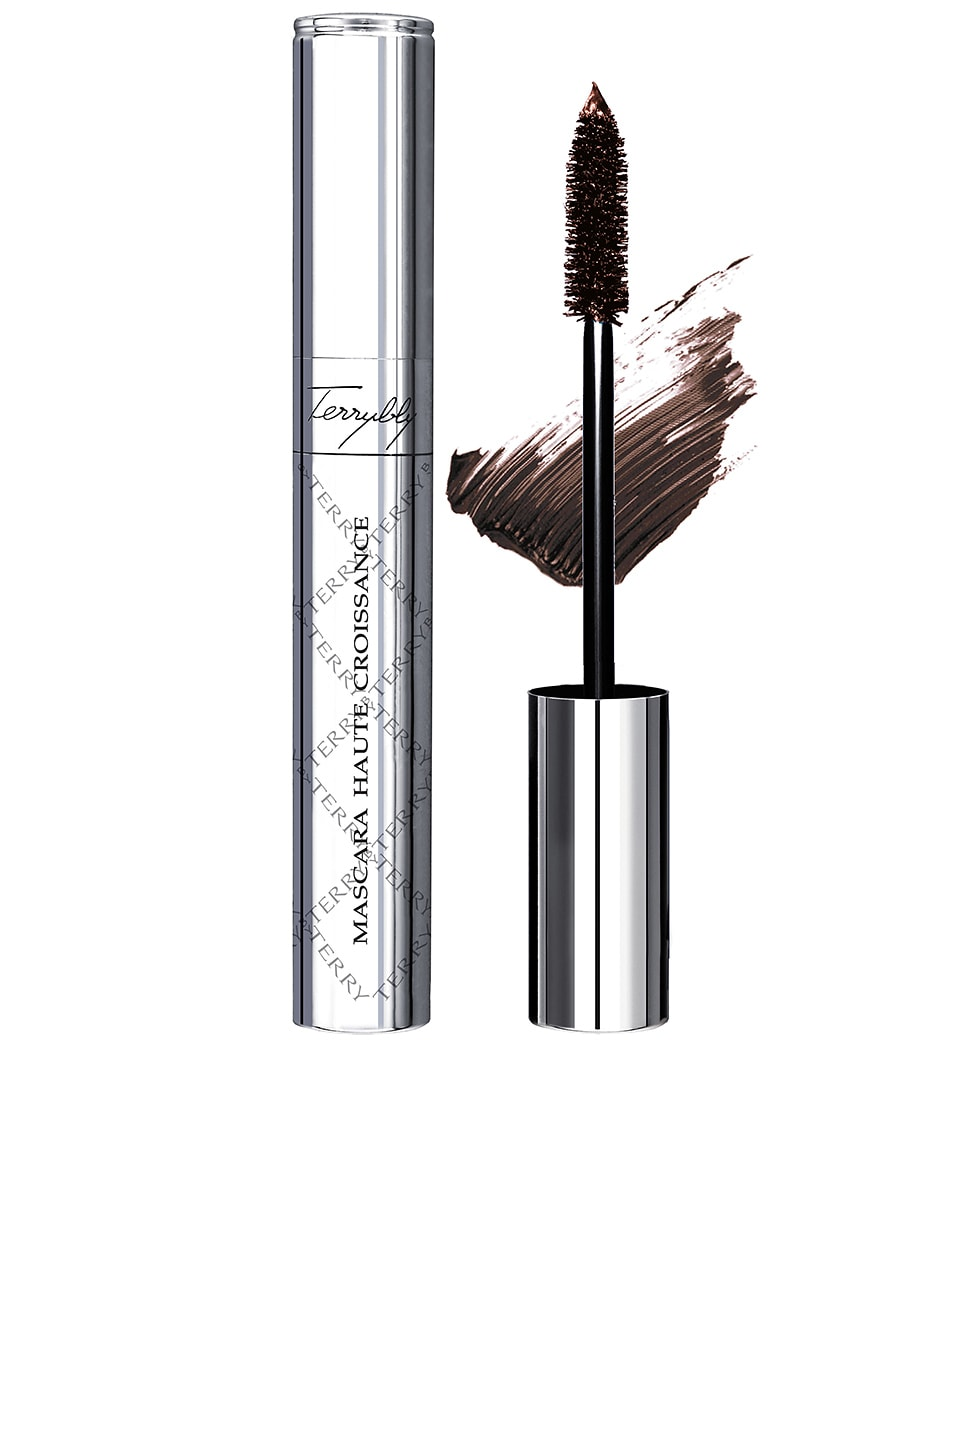 By Terry Terrybly Growth Booster Mascara in Moka Brown